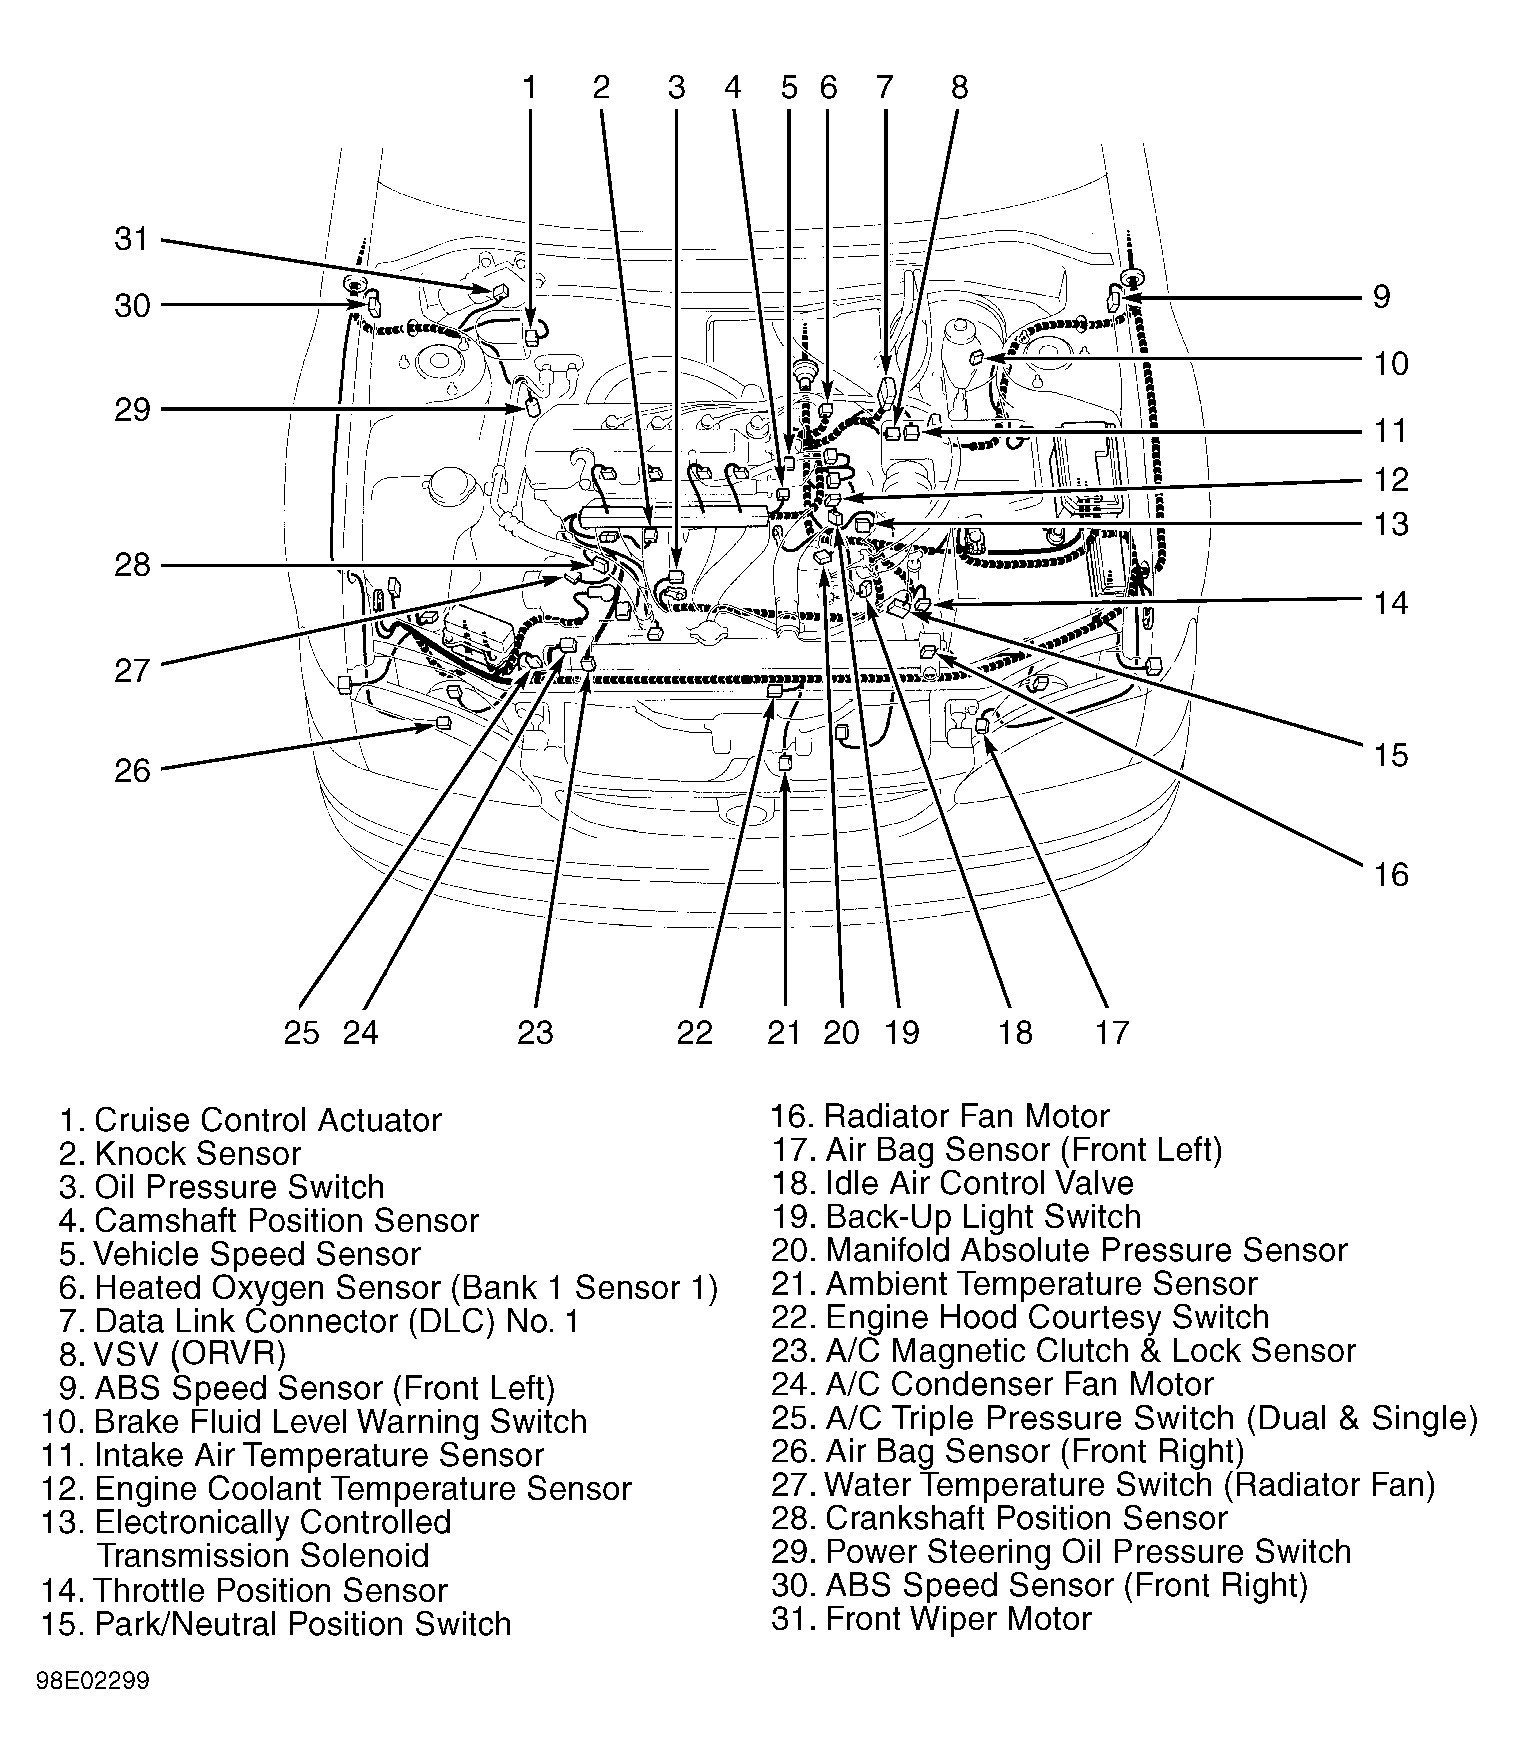 Mustang Engine Diagram 1999 toyota Corolla Engine Part Diagram Engine Part Diagram Car Of Mustang Engine Diagram